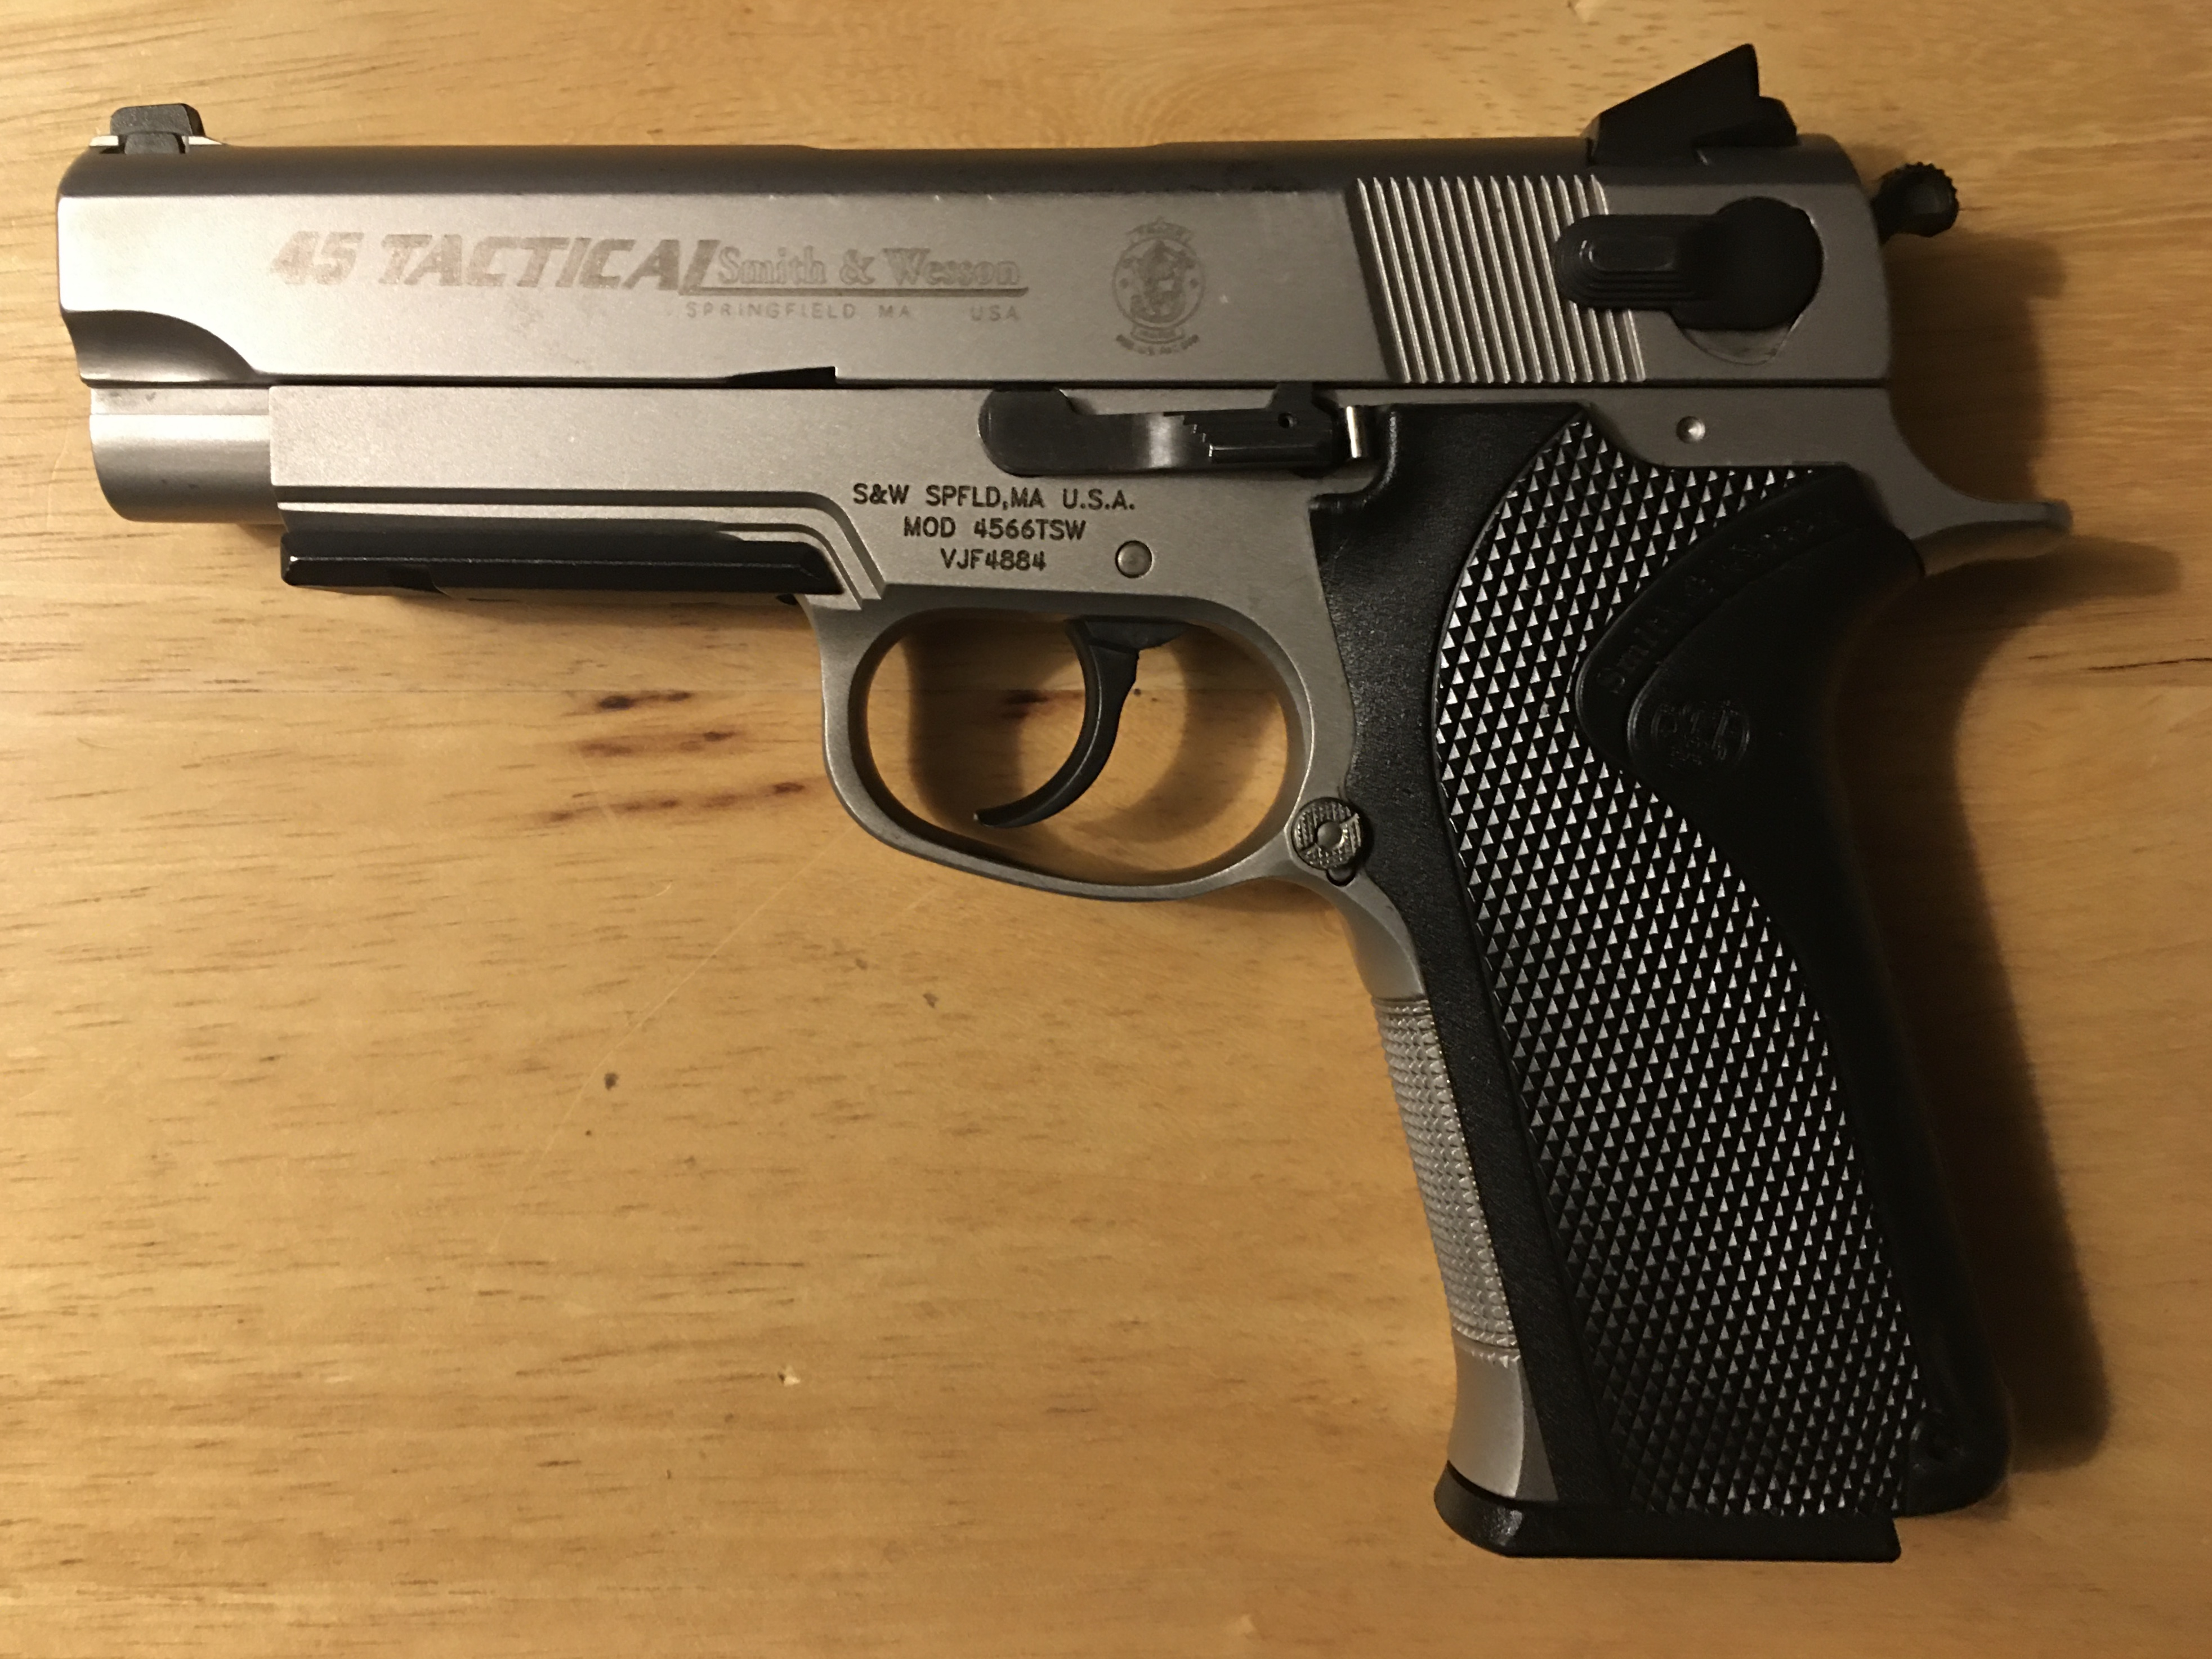 Anybody get anything good that's firearm related today?-4566tsw-1.jpg